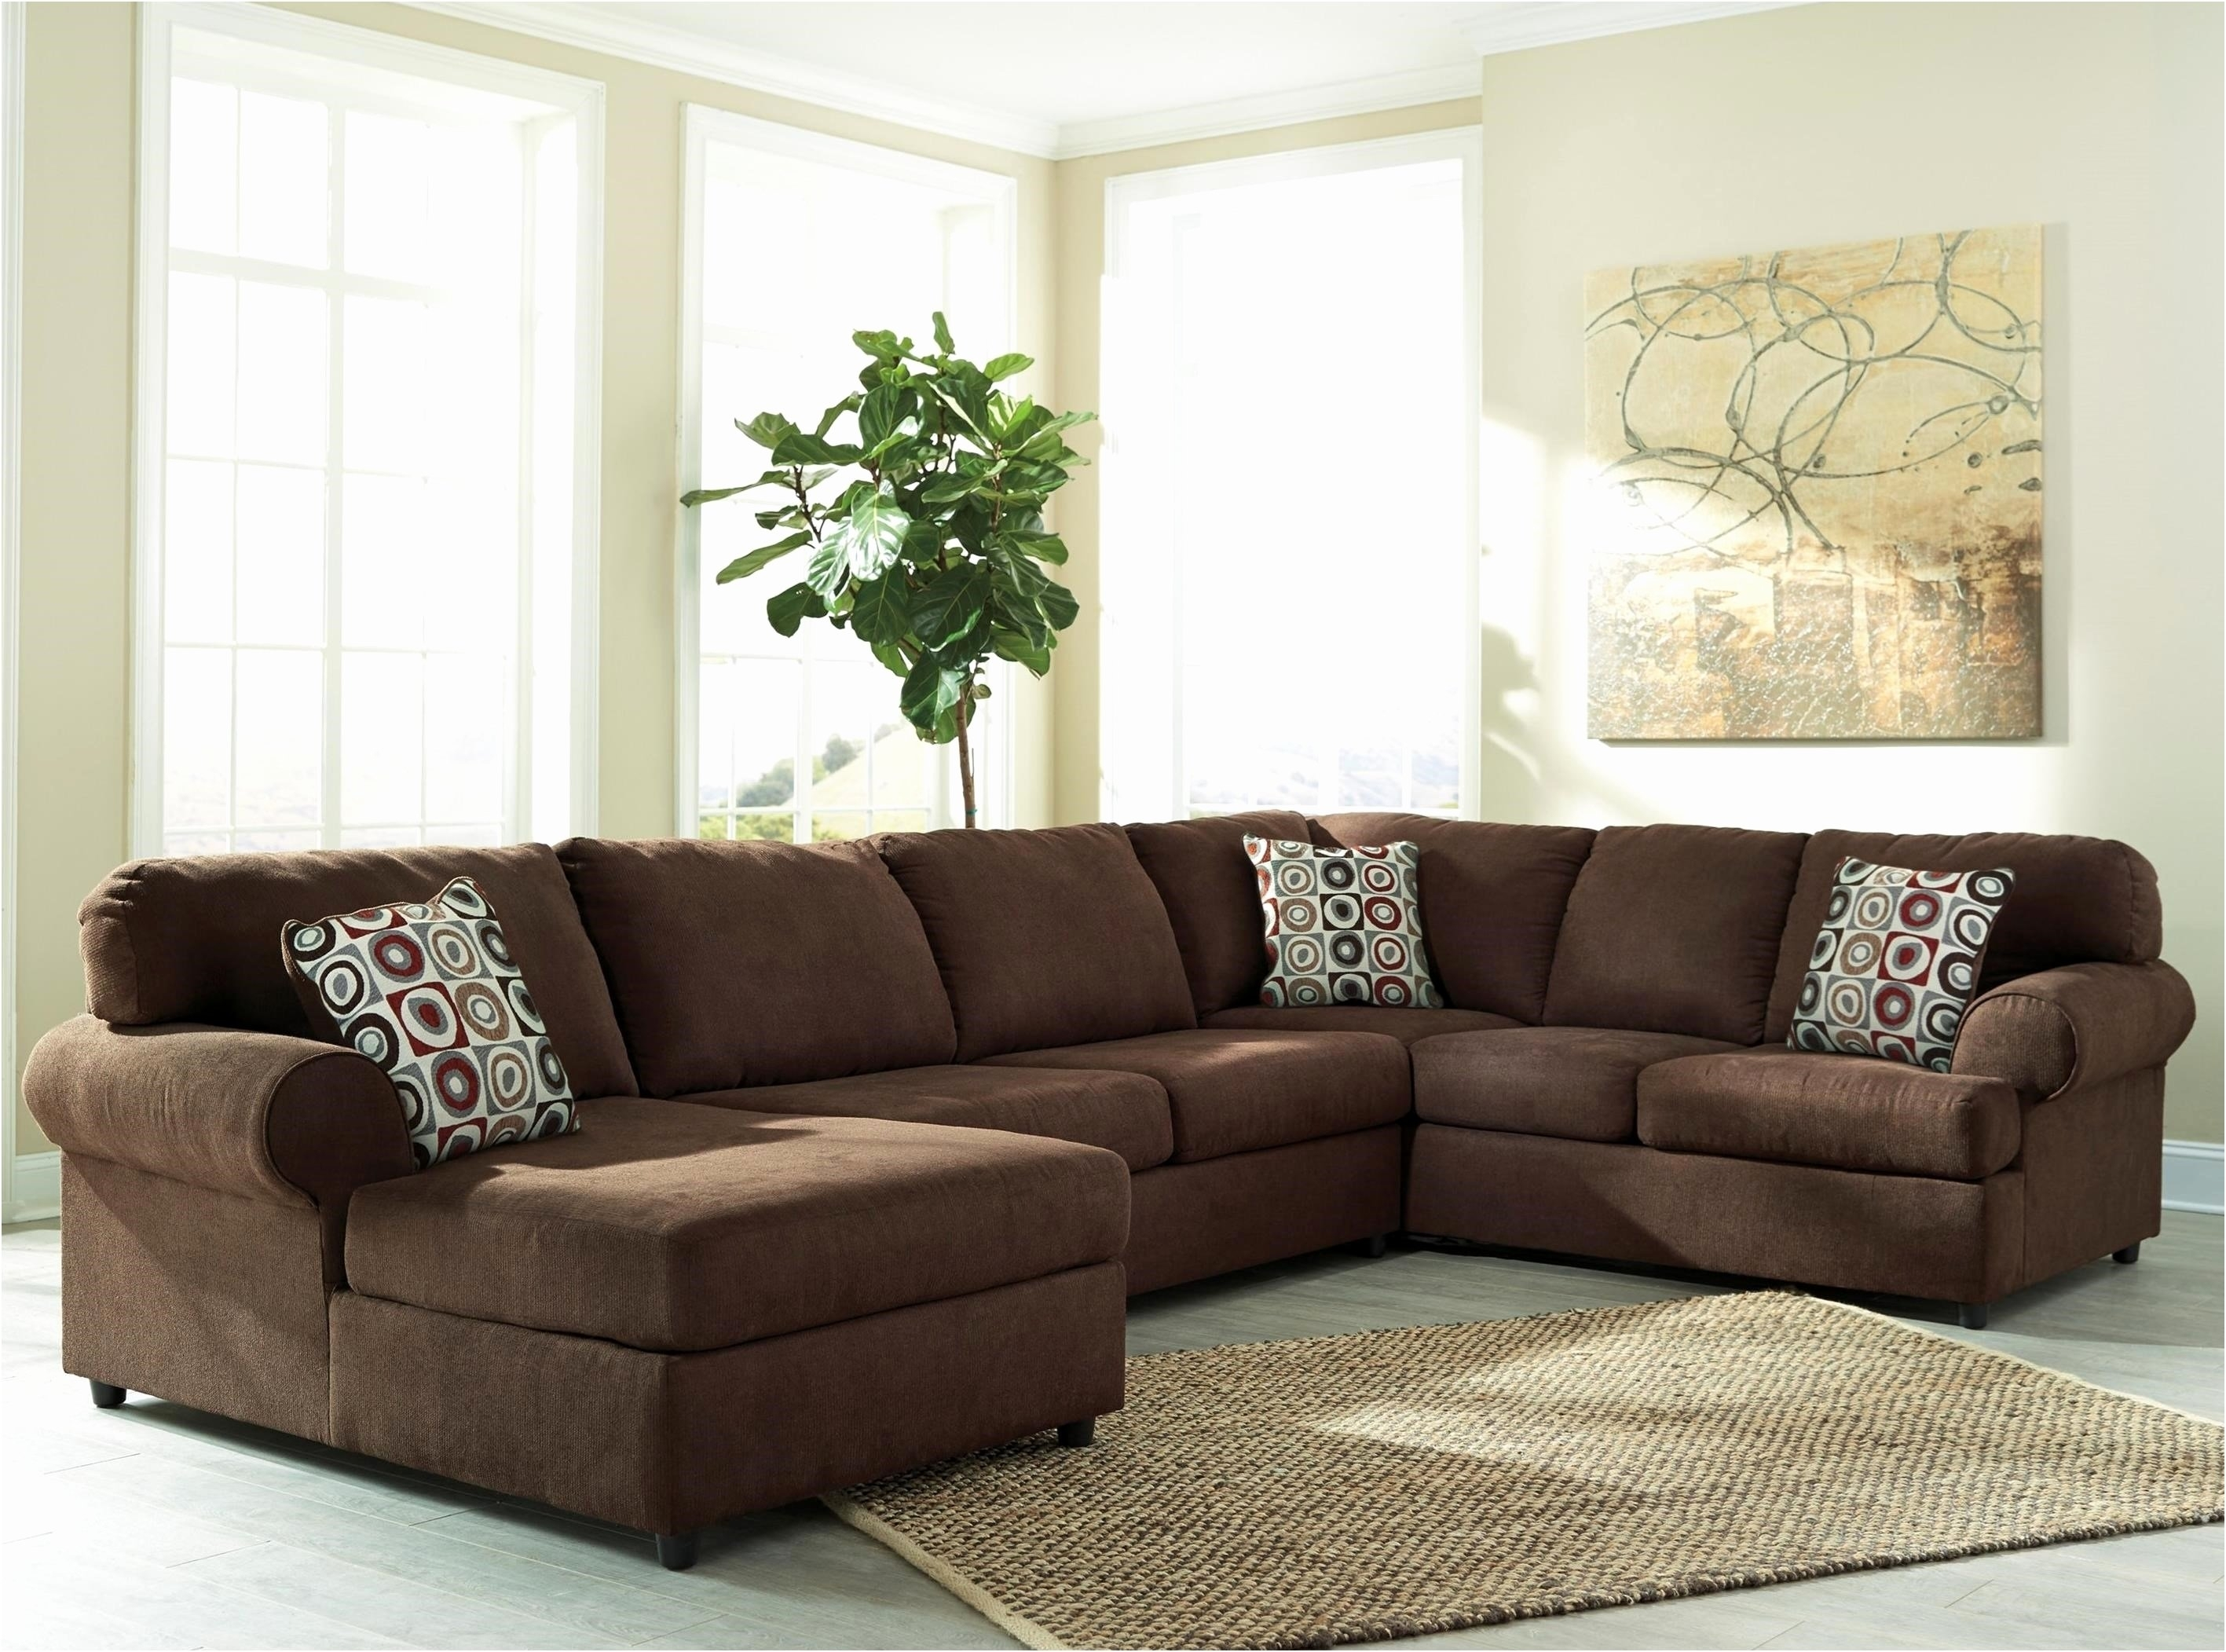 Havertys Furniture Sectionals Inspiration Probably Super Real Throughout Arrowmask 2 Piece Sectionals With Sleeper & Left Facing Chaise (View 17 of 25)